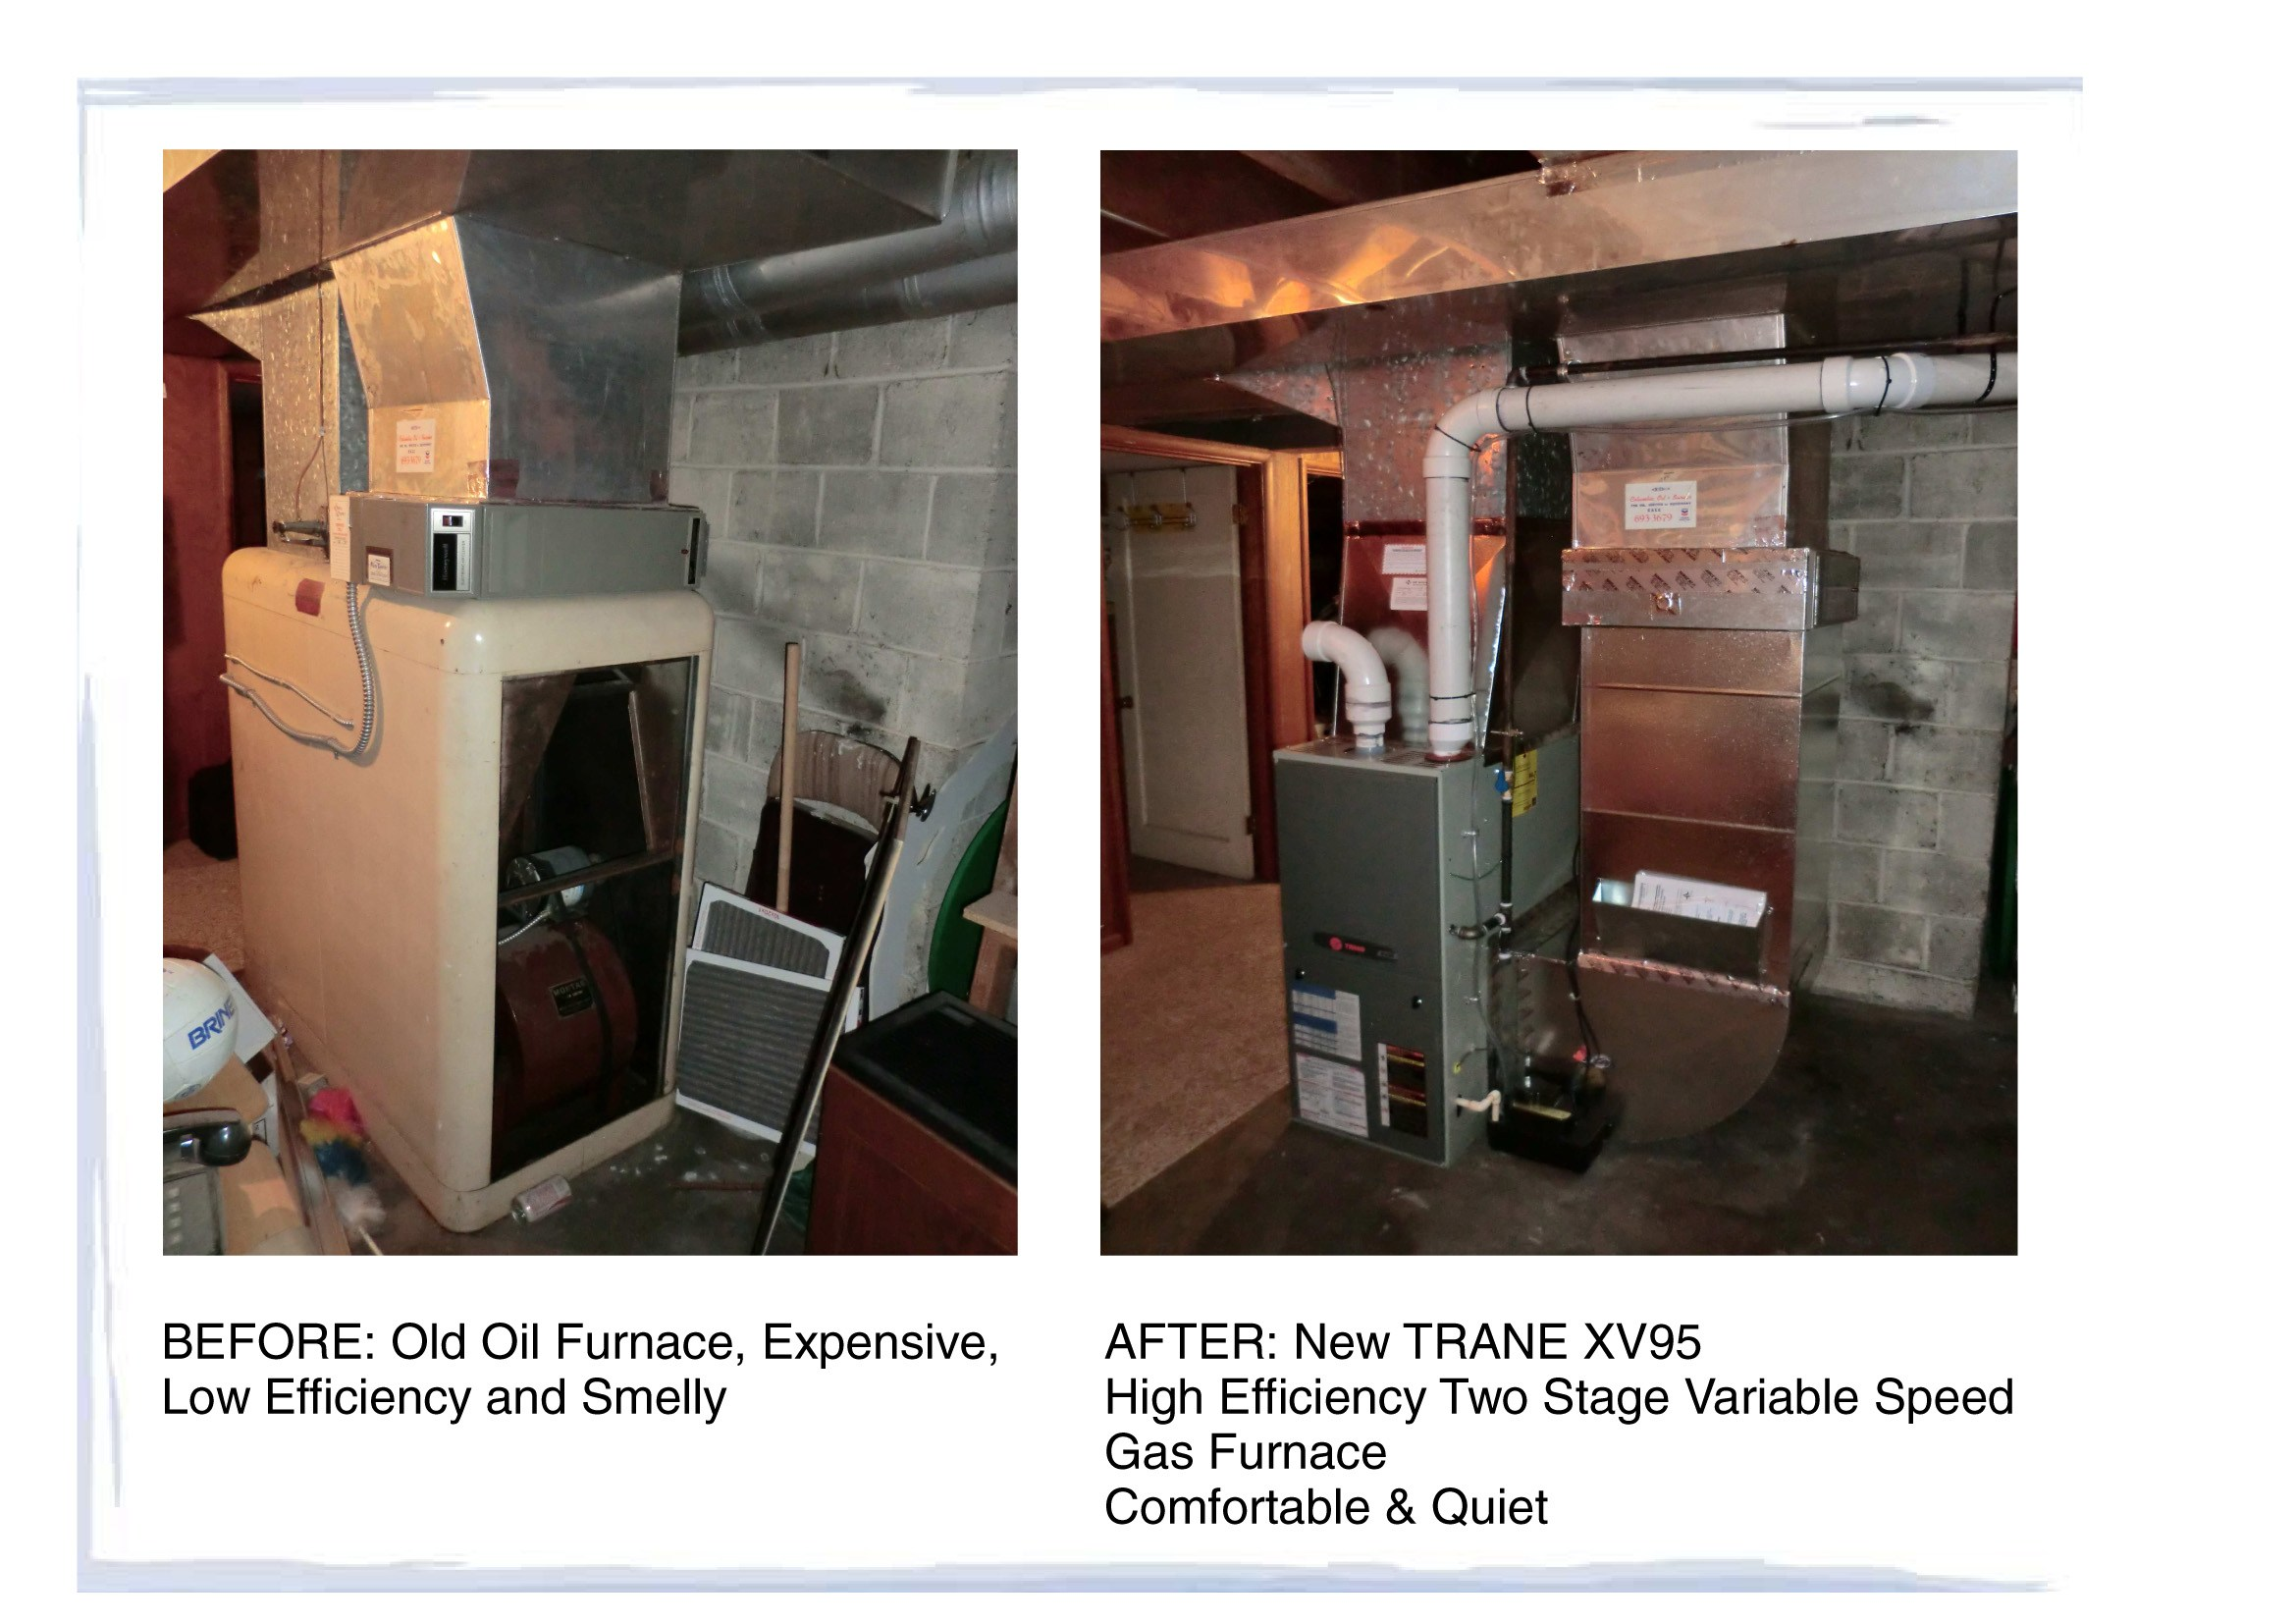 Trane xv95 installation Manual